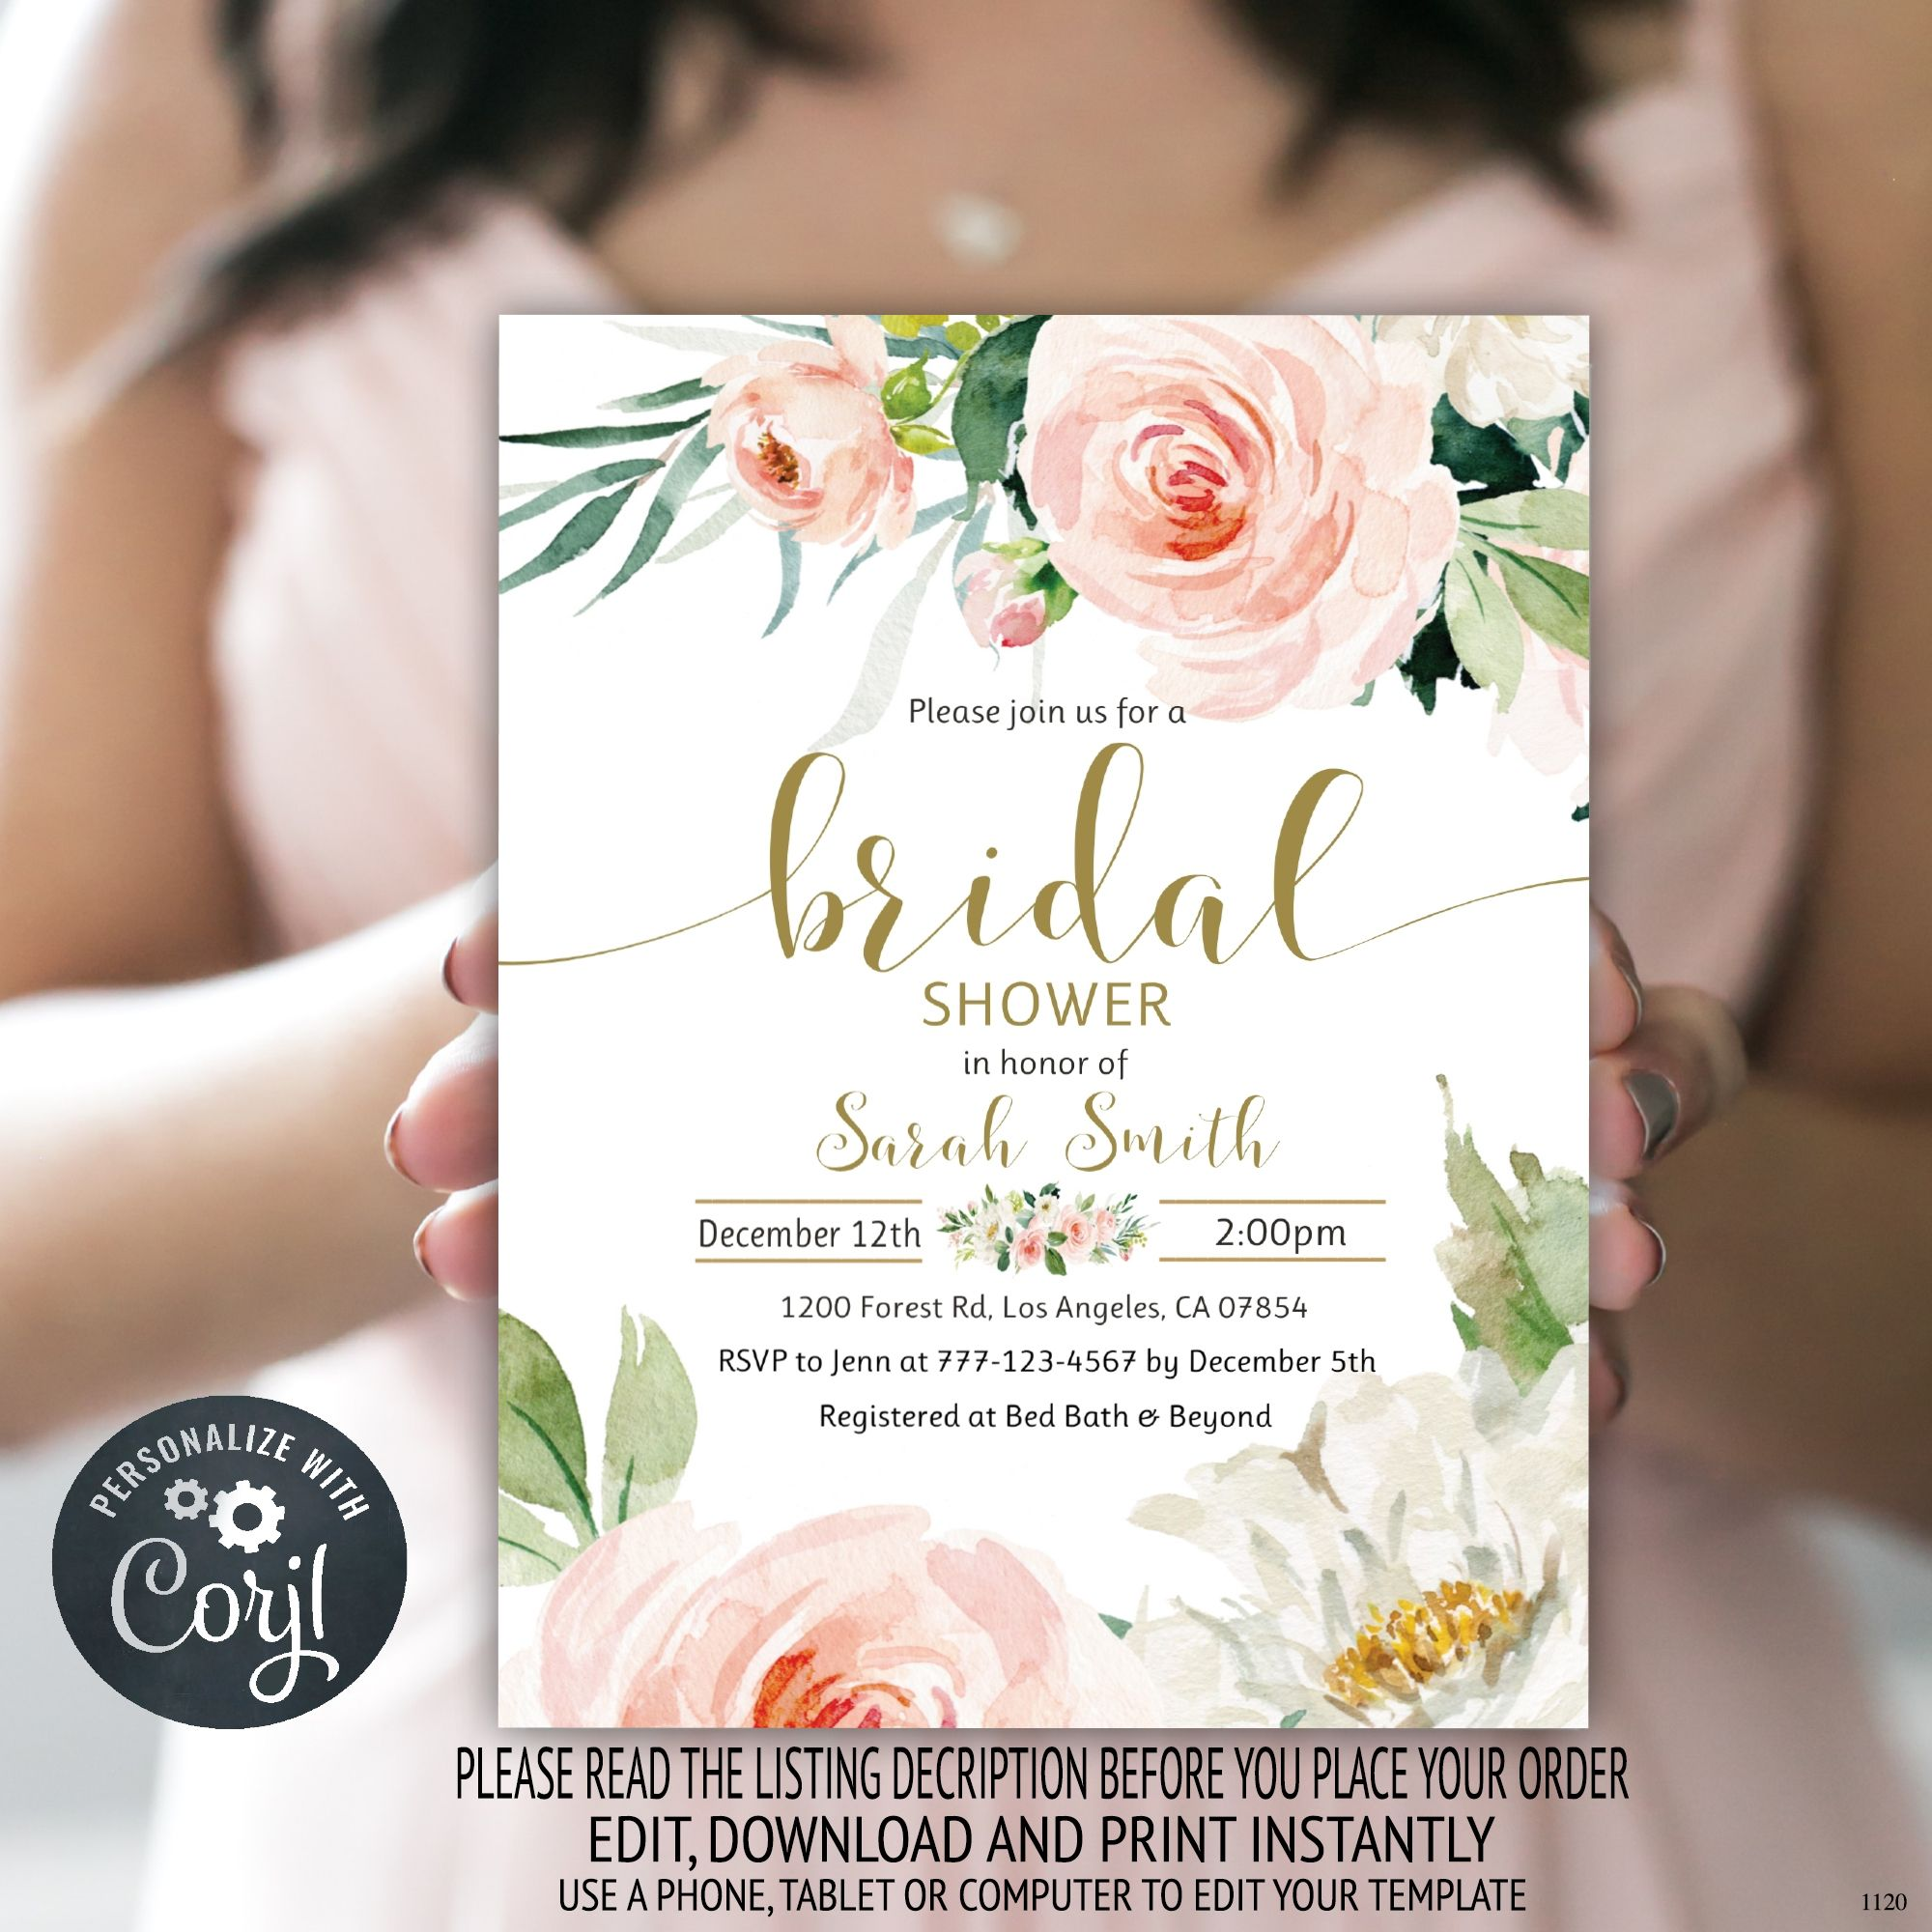 wedding shower minimalist FFTH fall instant download editable template boho bridal shower dinner invitation party printable feathers